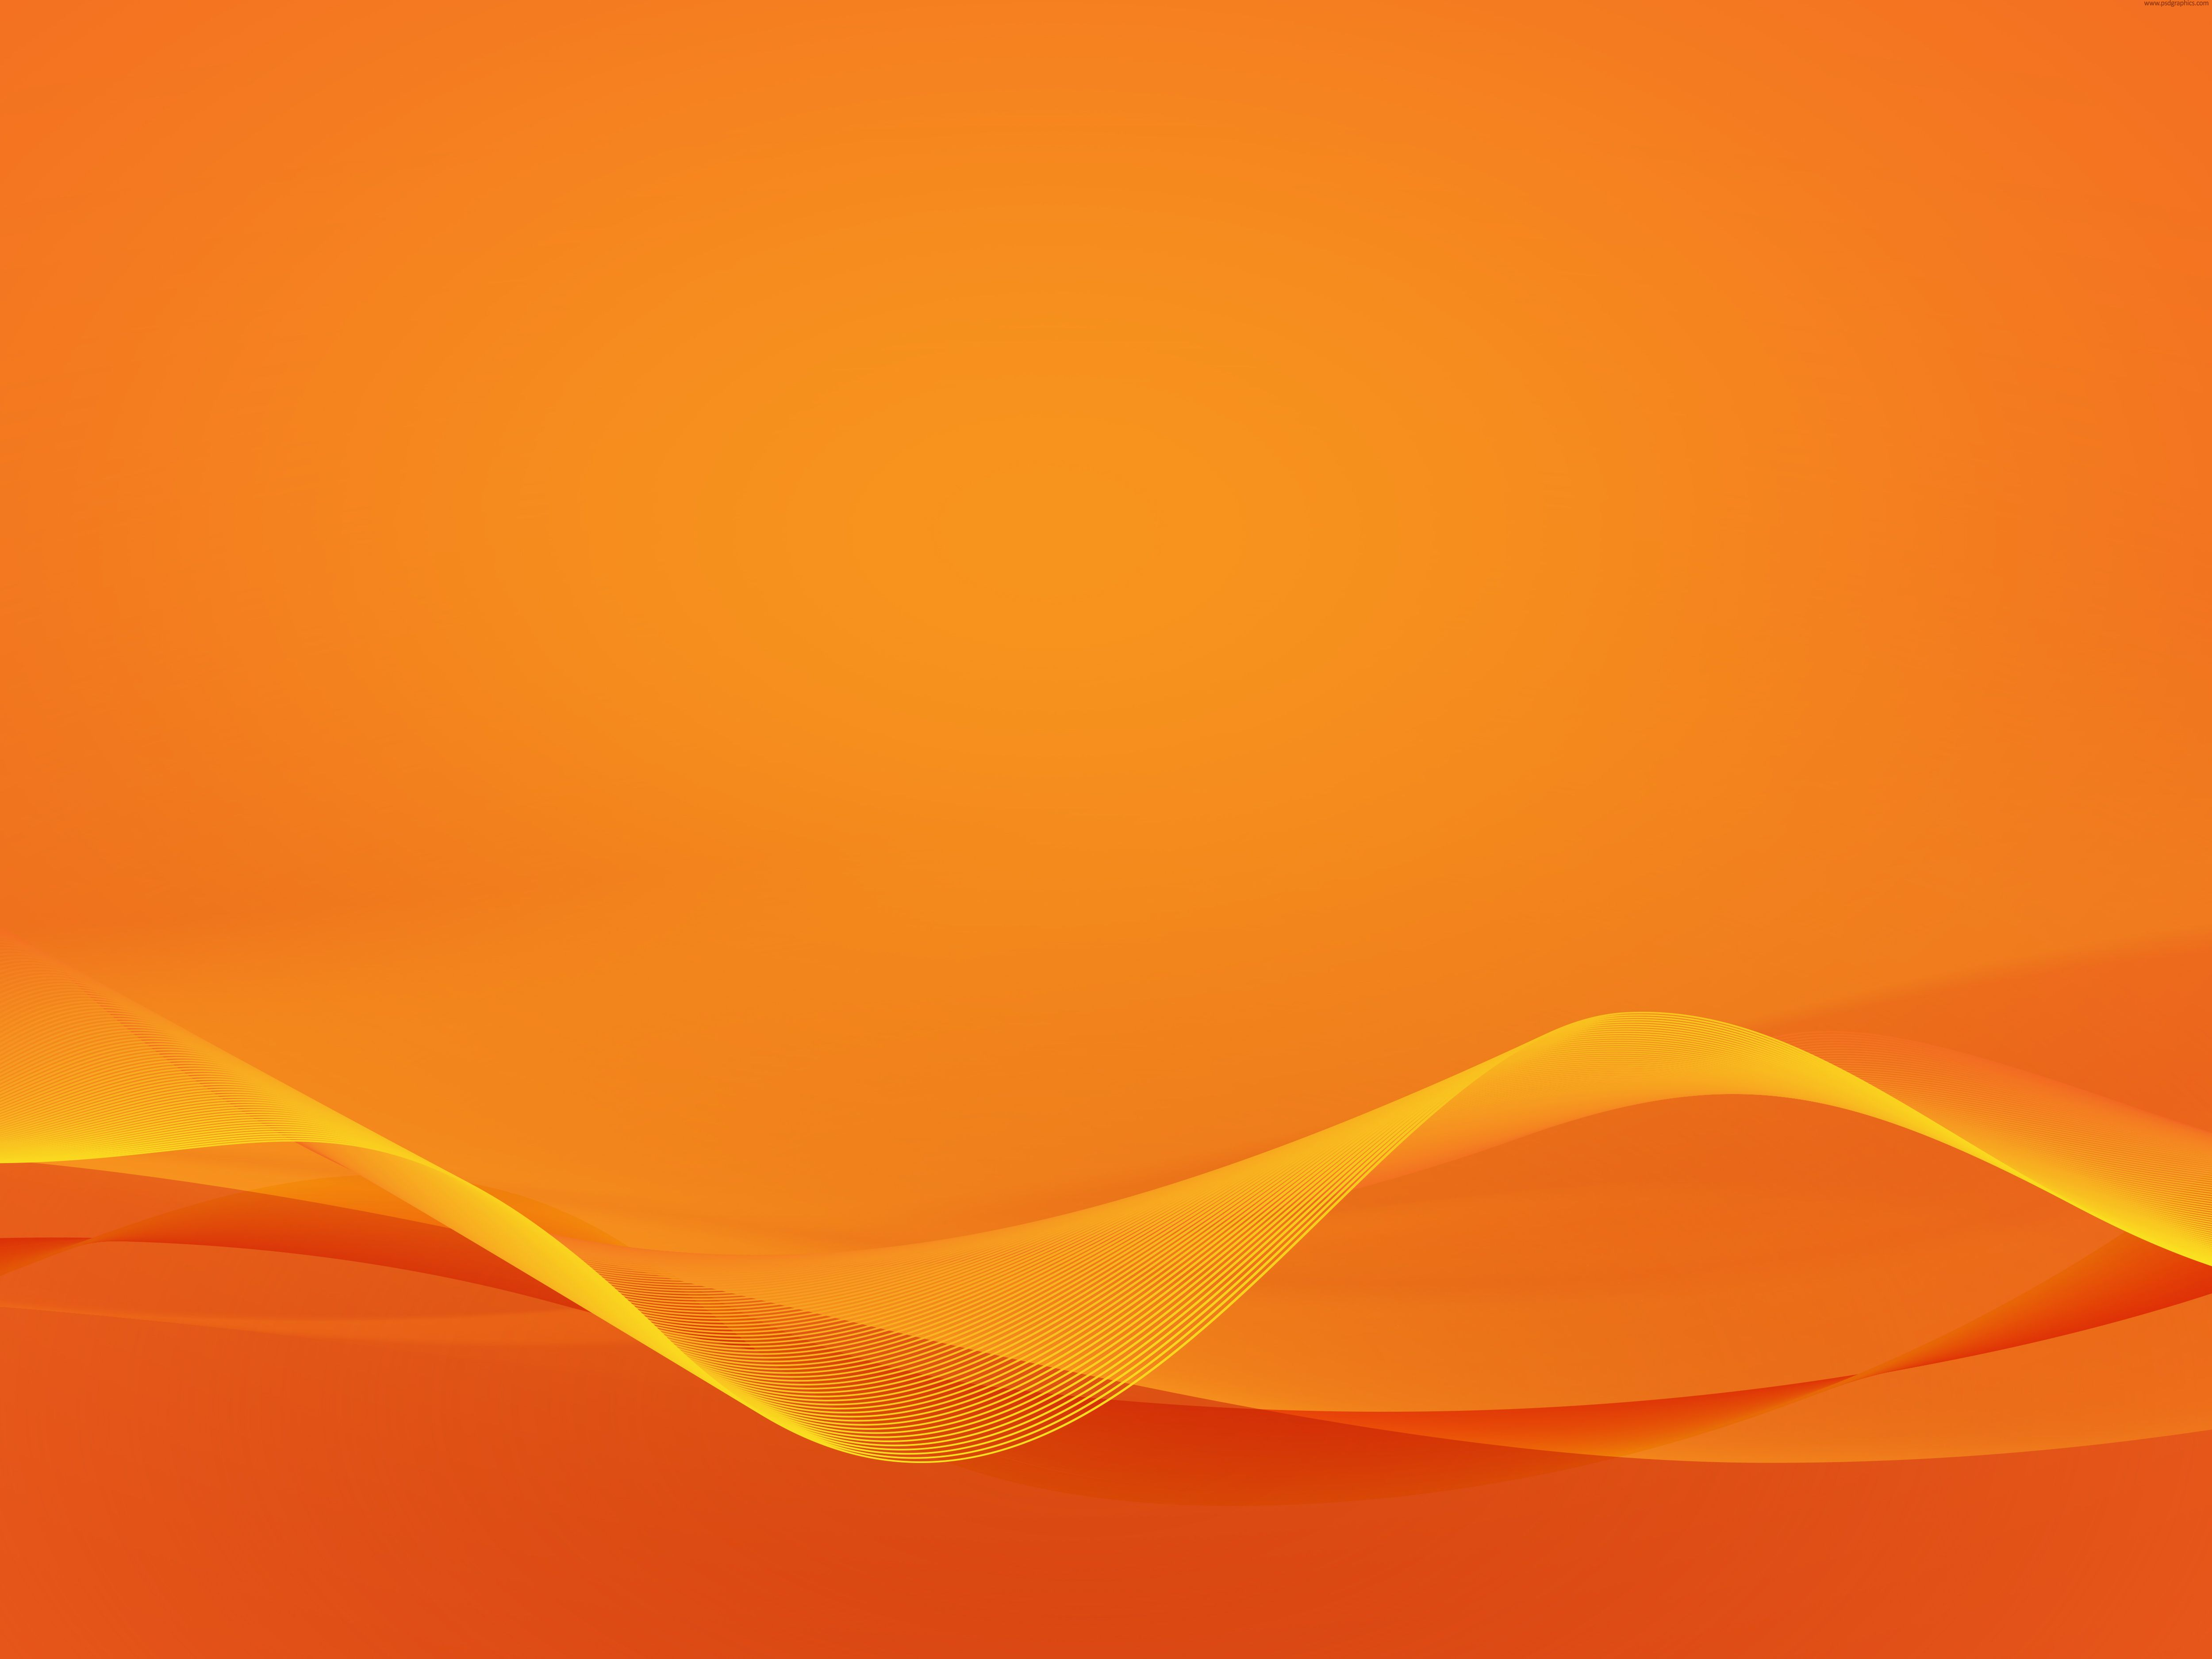 Graphic Design Backgrounds user interface design wavy 5000x3750